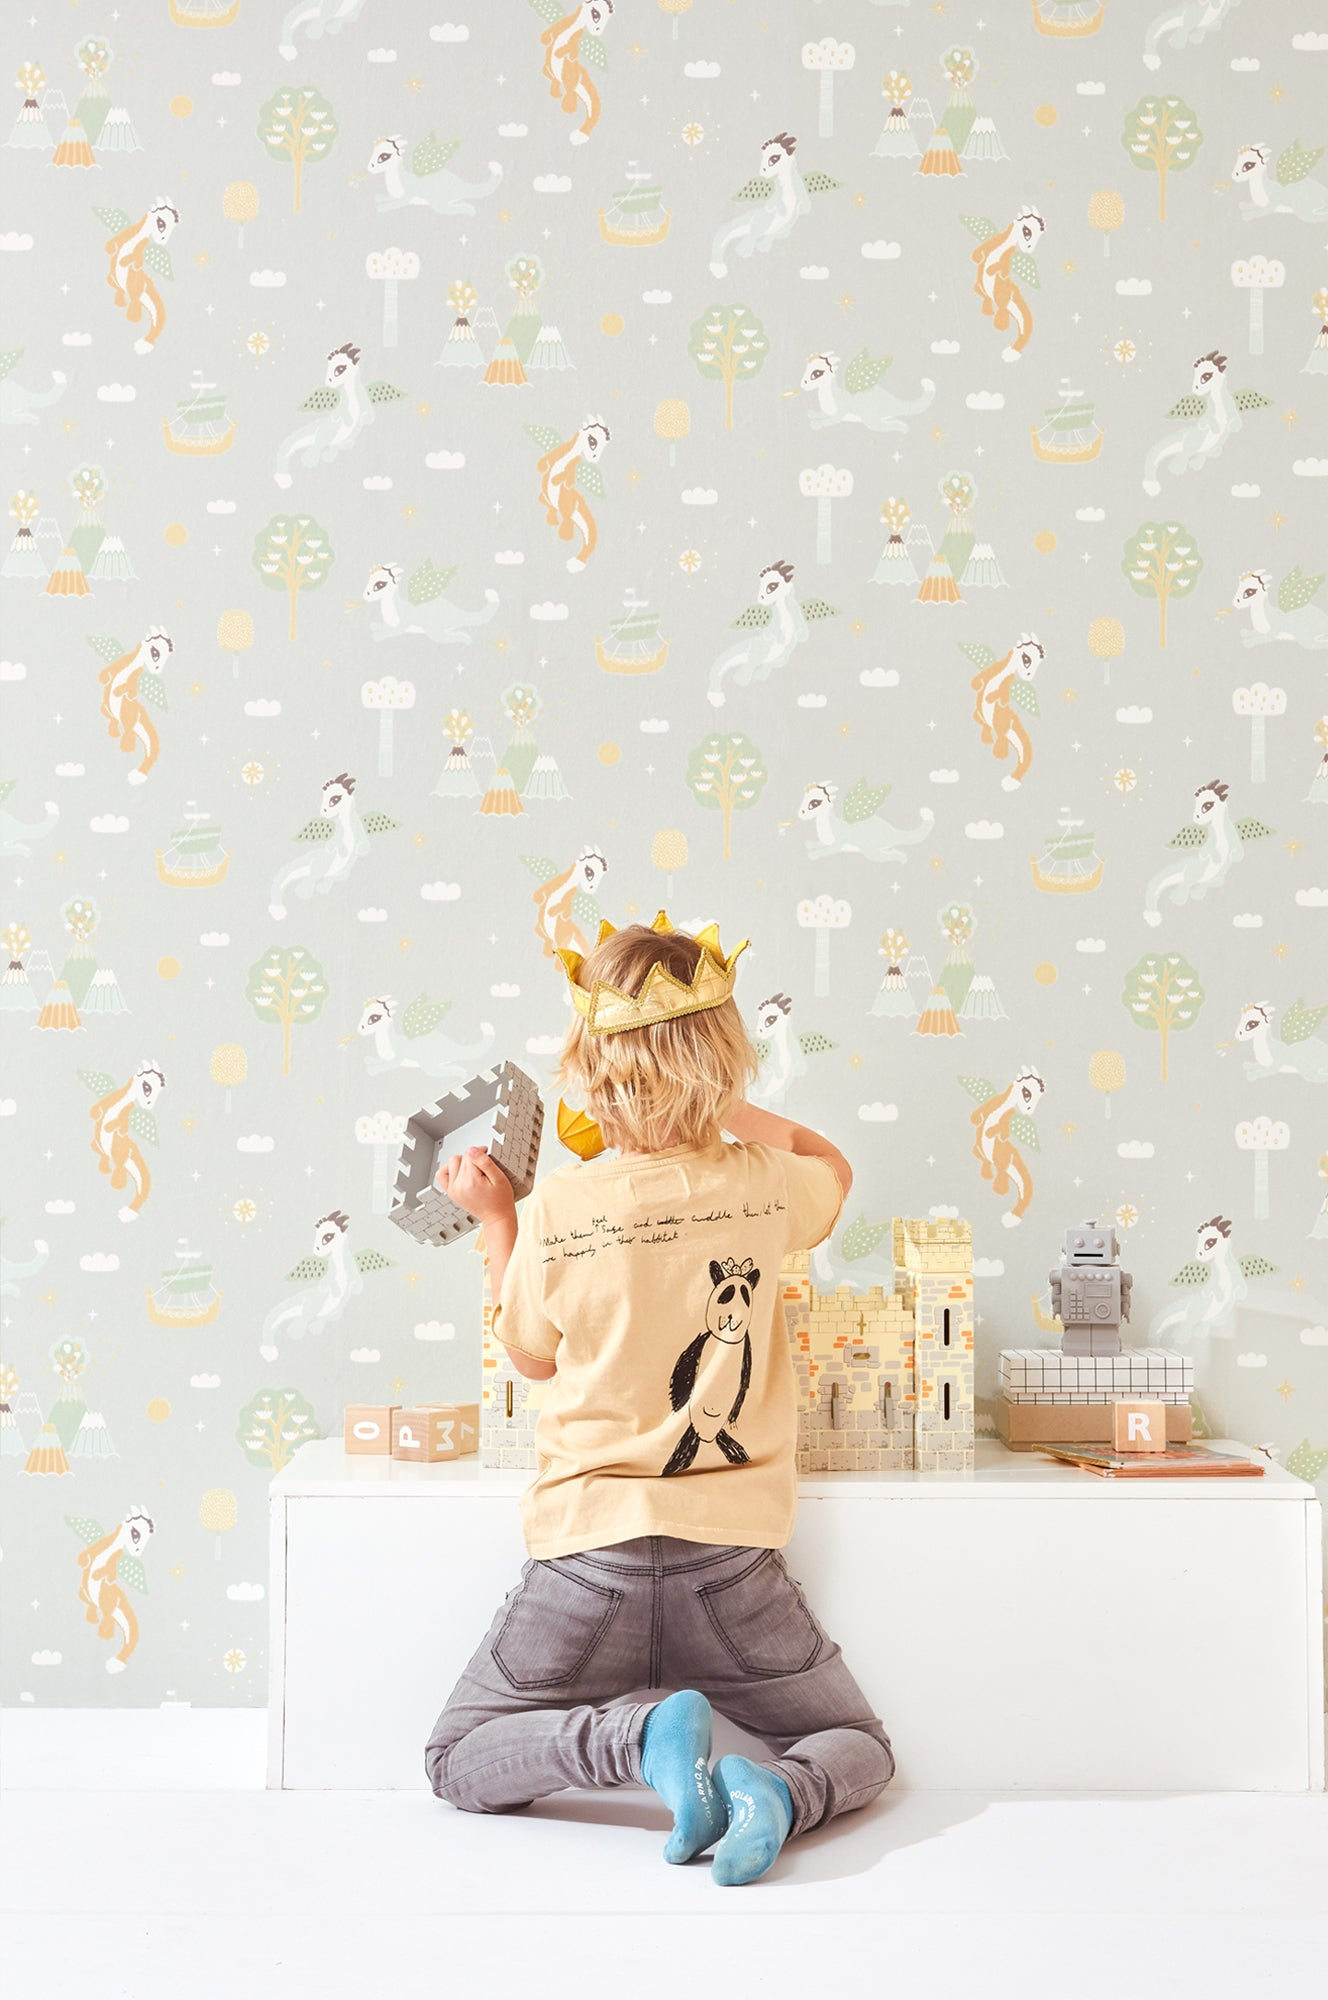 Majvillan children's wallpaper 'Magical Adventure', available at Bobby Rabbit